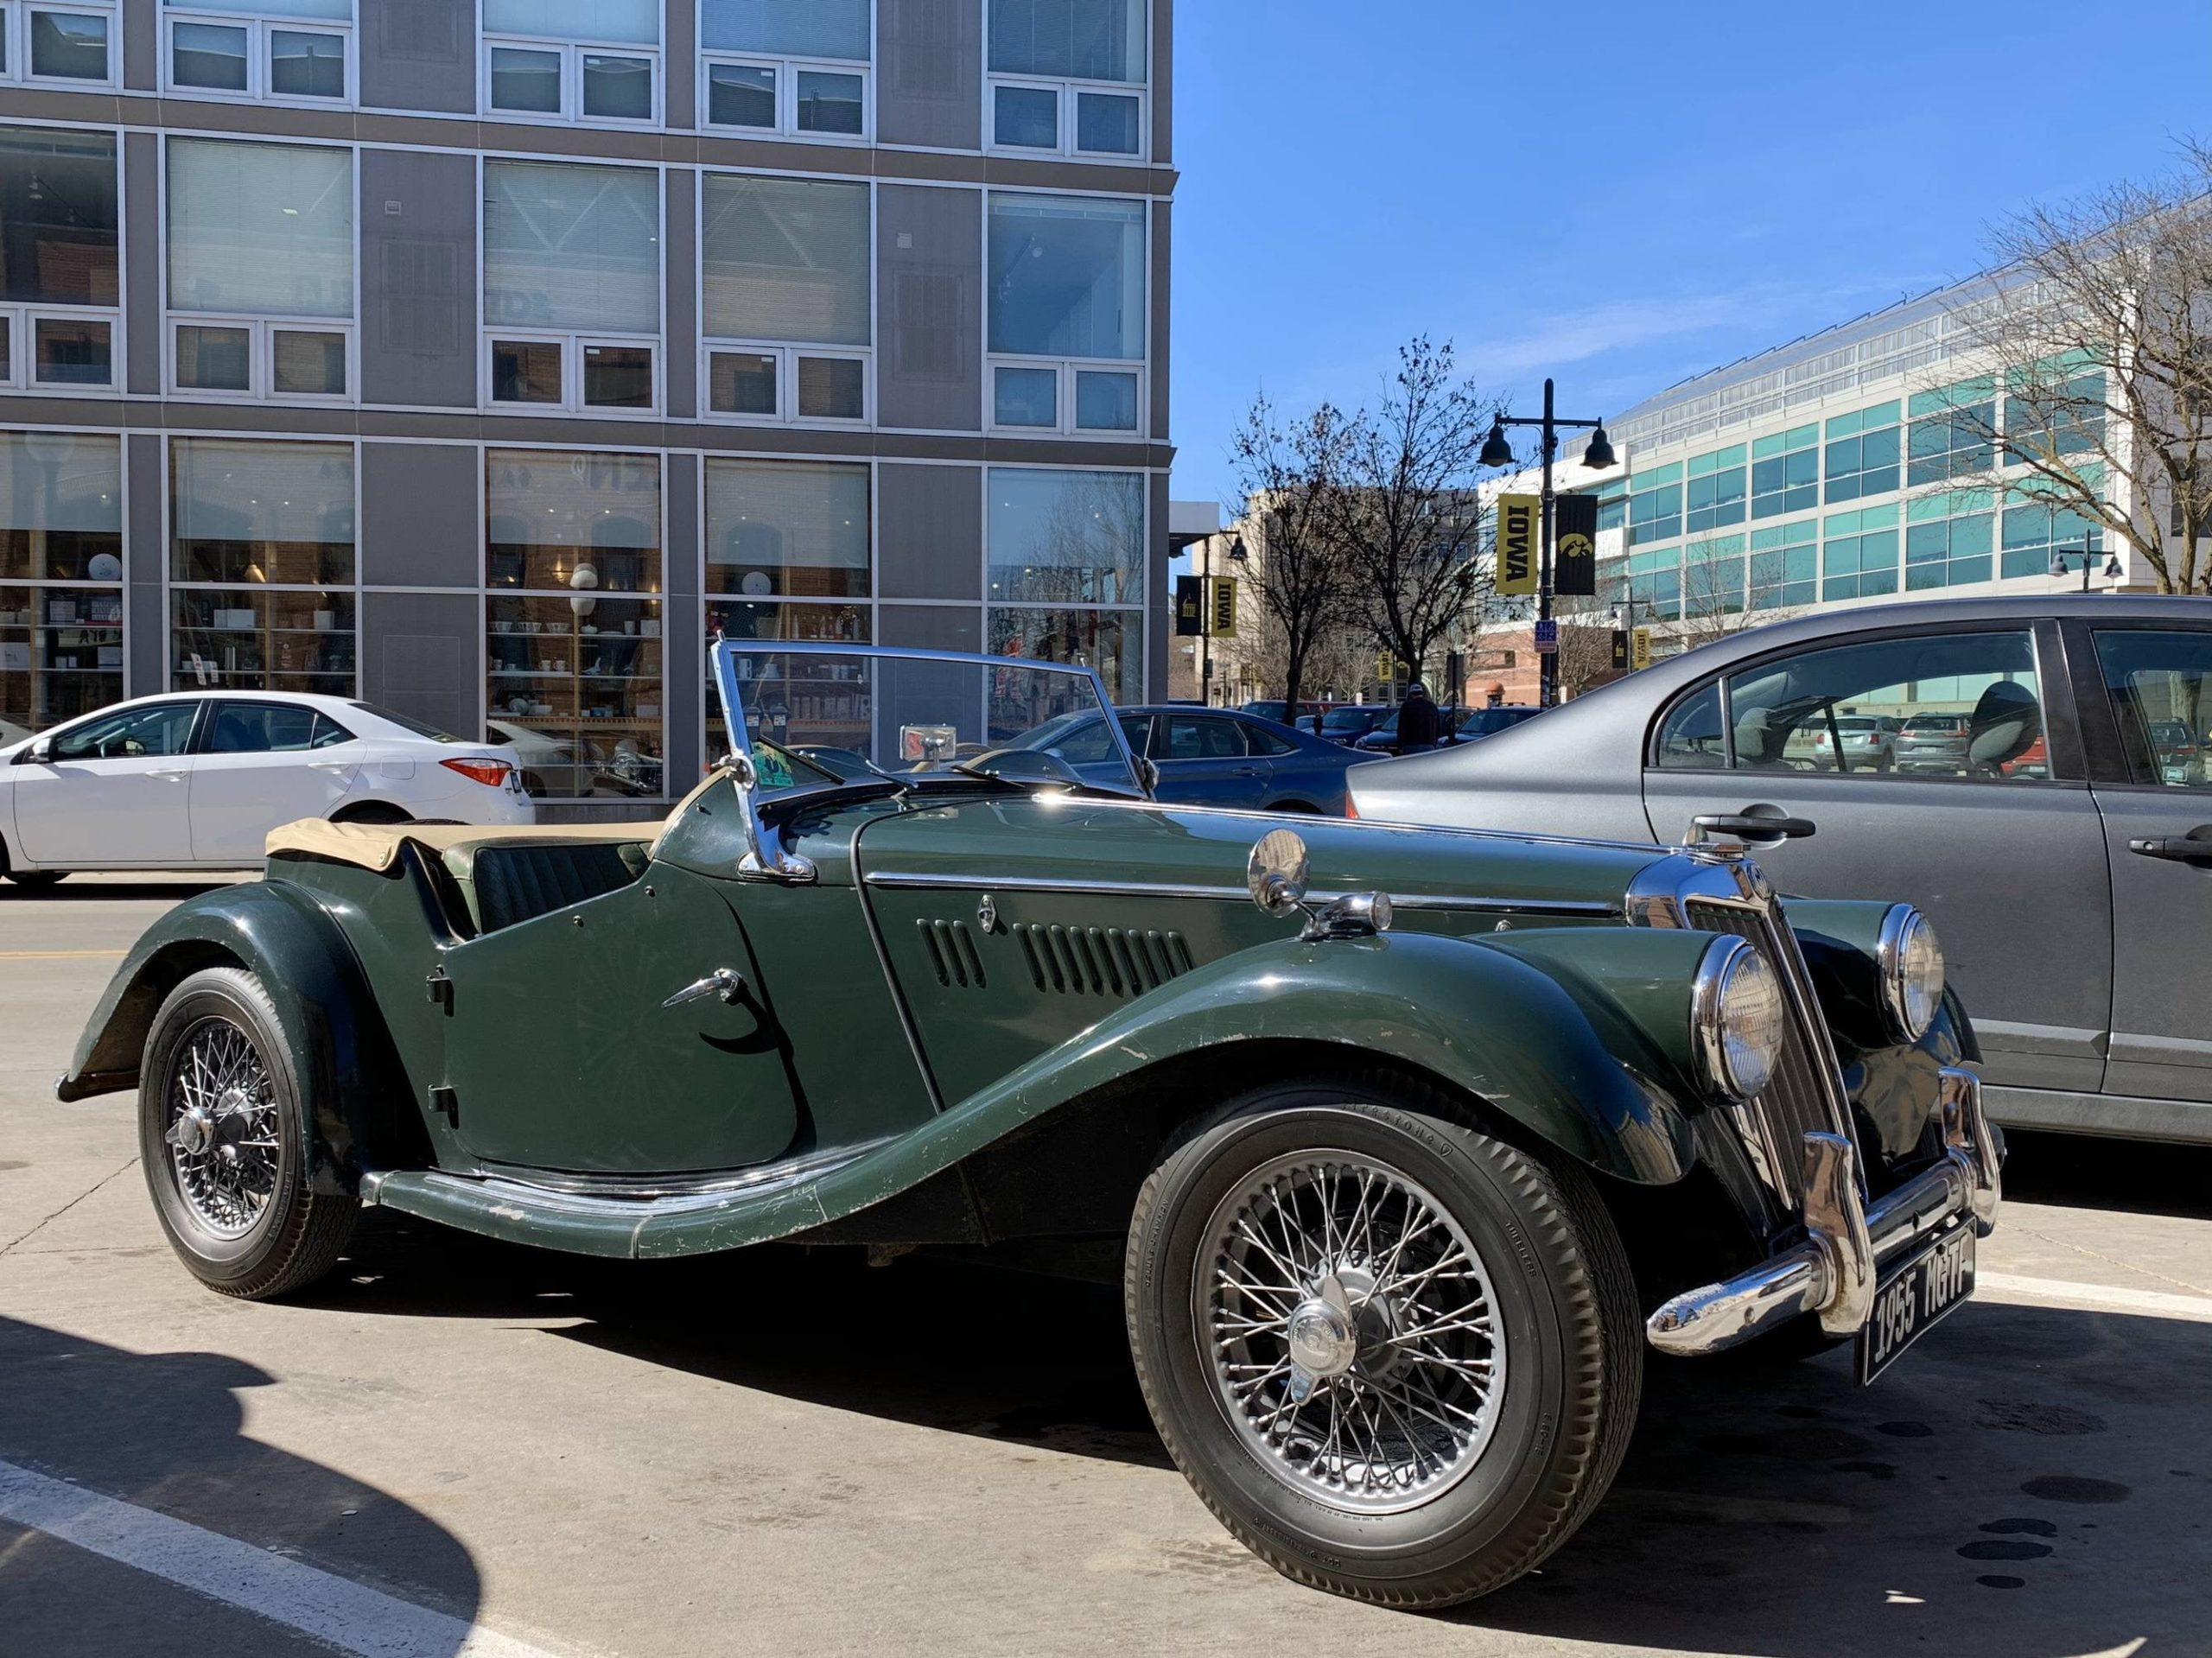 1955 MG TF Roadster, downtown Iowa City [OC]